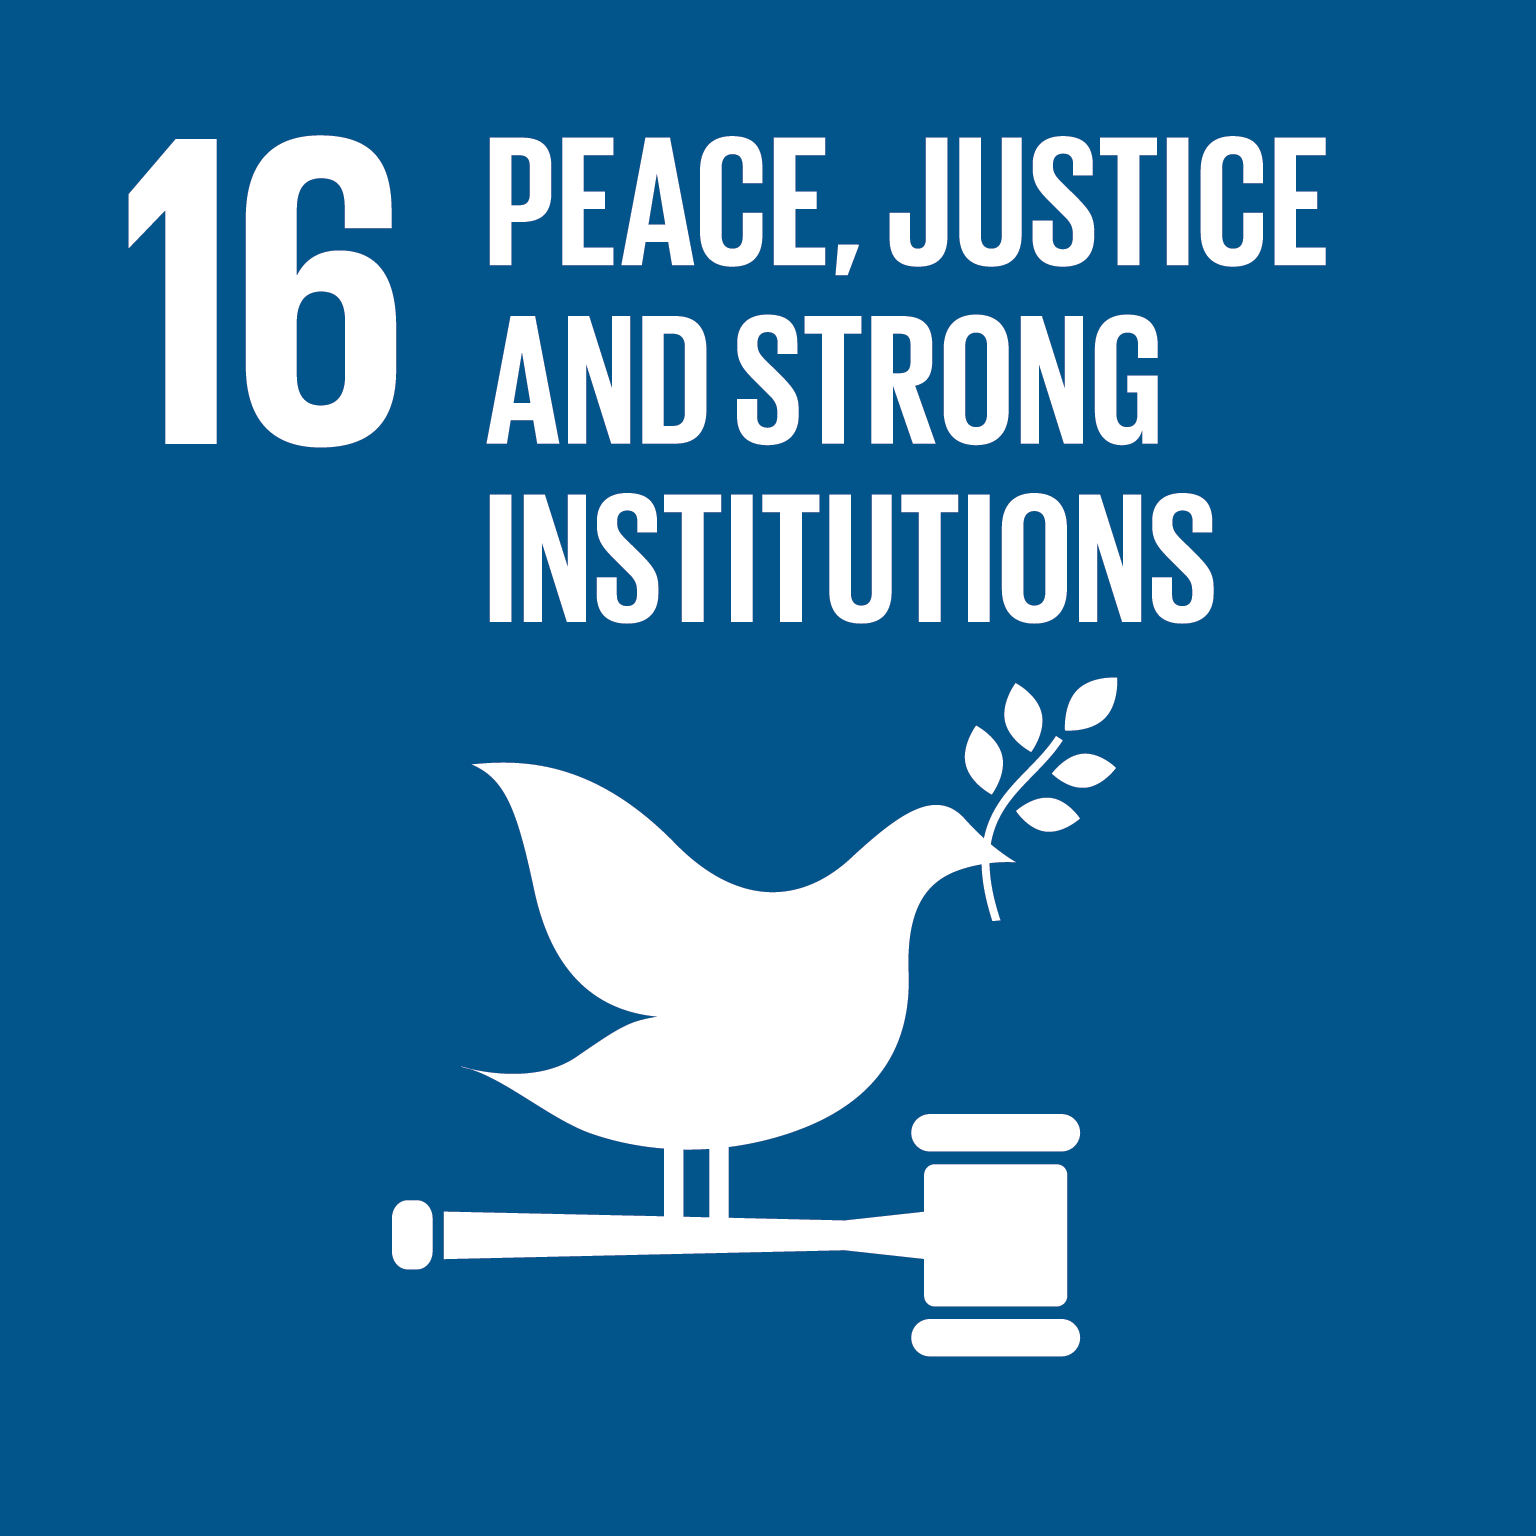 16_PeaceJusticeAndStrongInstitutions